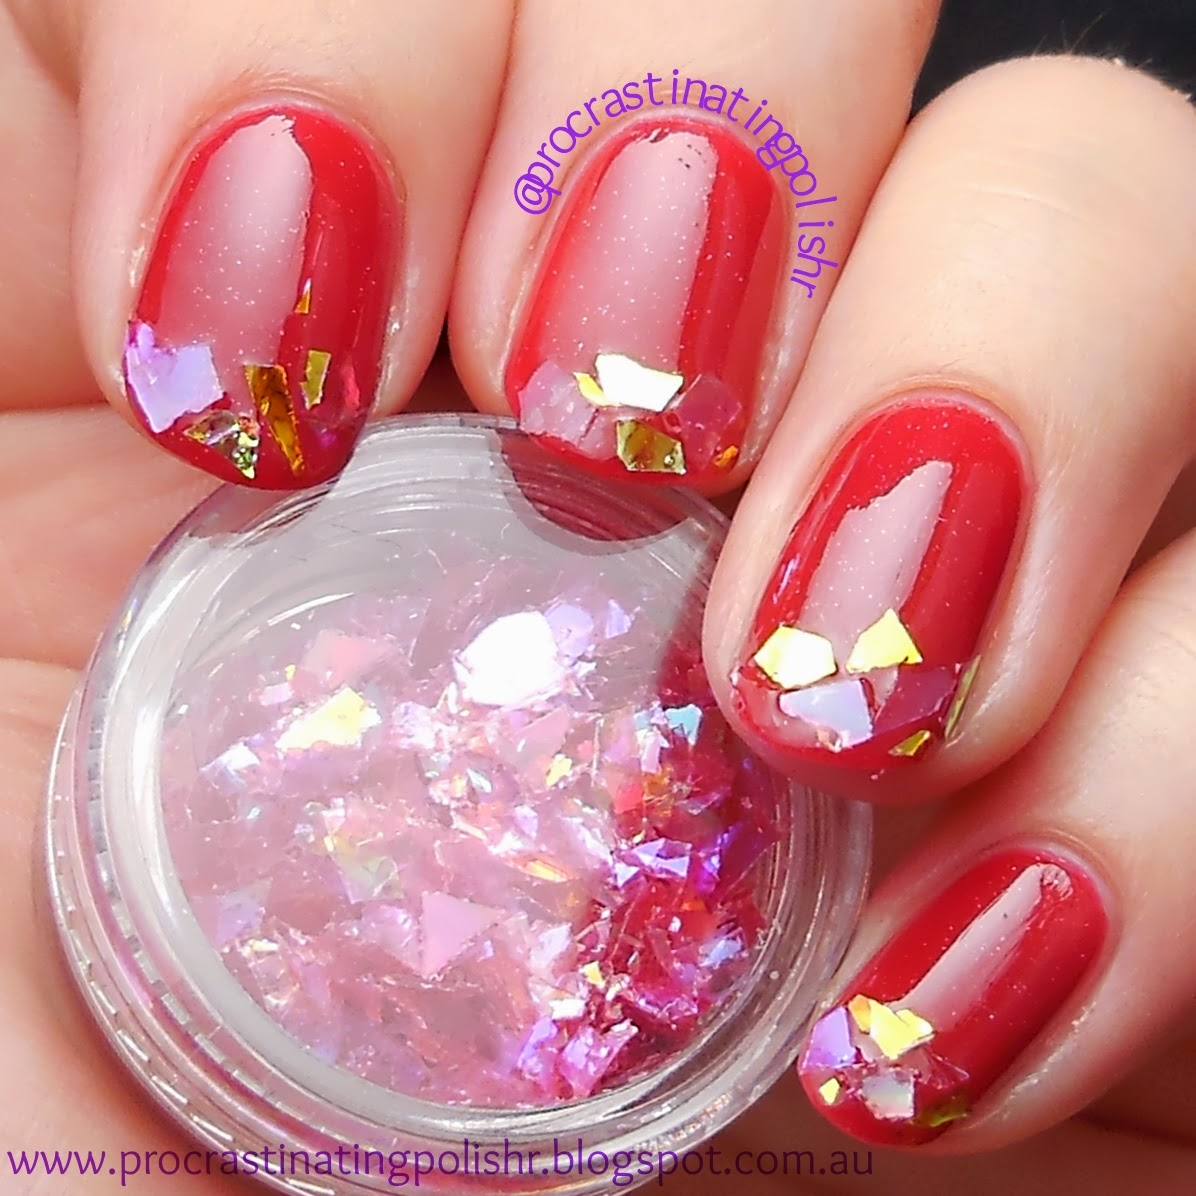 French tip nail art with Mylar pieces